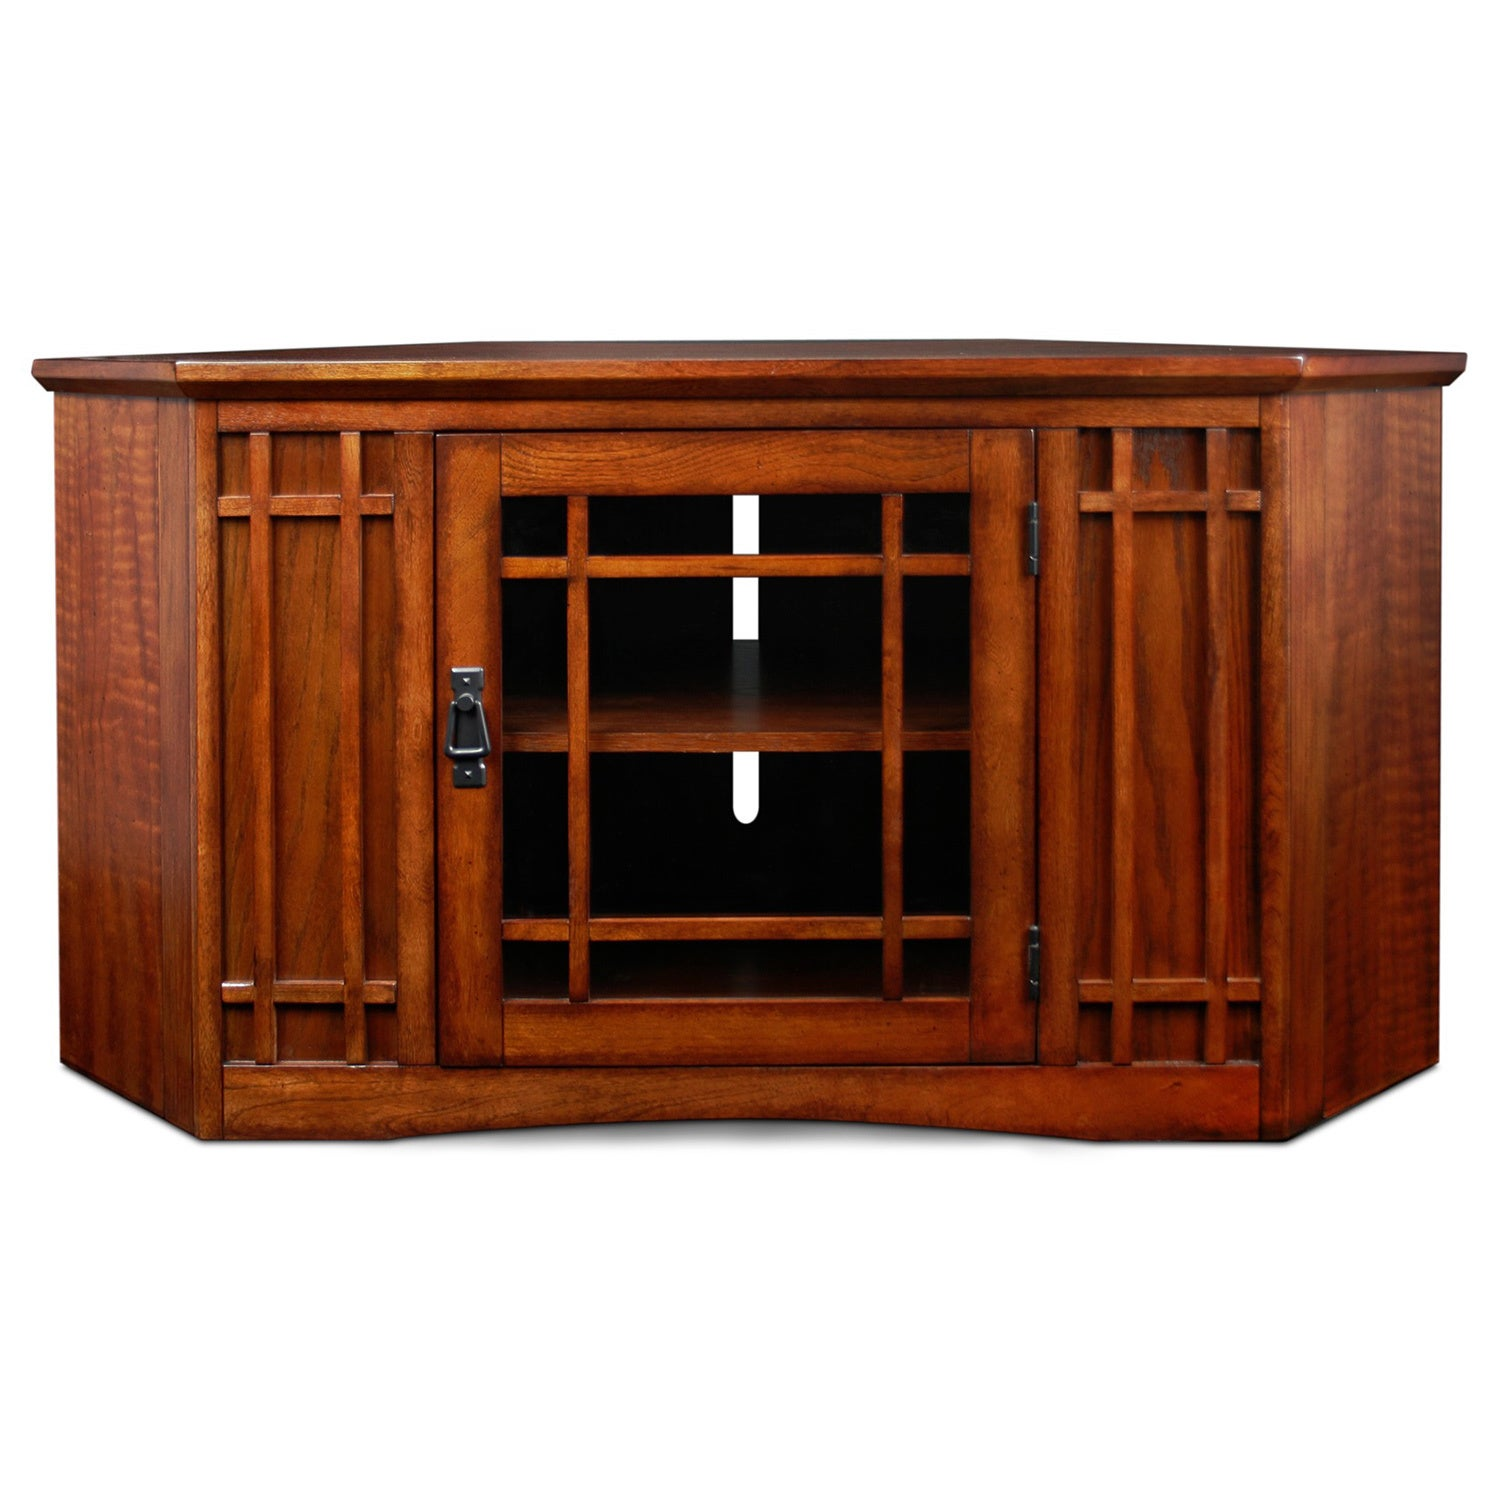 Shop Mission Oak 46 Inch Corner TV Stand U0026 Media Console   Free Shipping  Today   Overstock   6056431